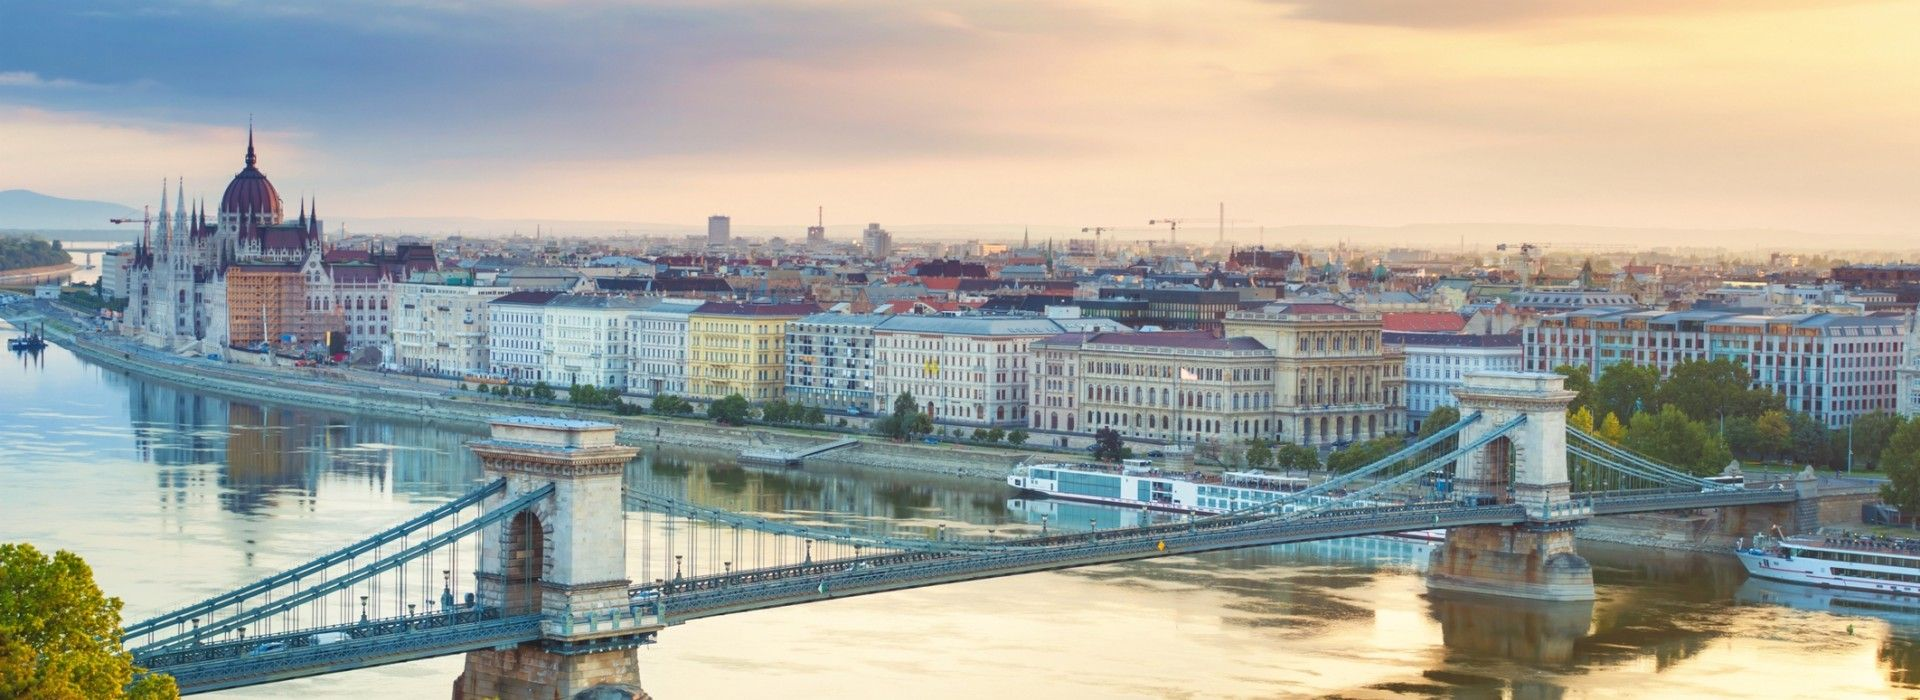 Sightseeing, attractions, culture and history Tours in Budapest